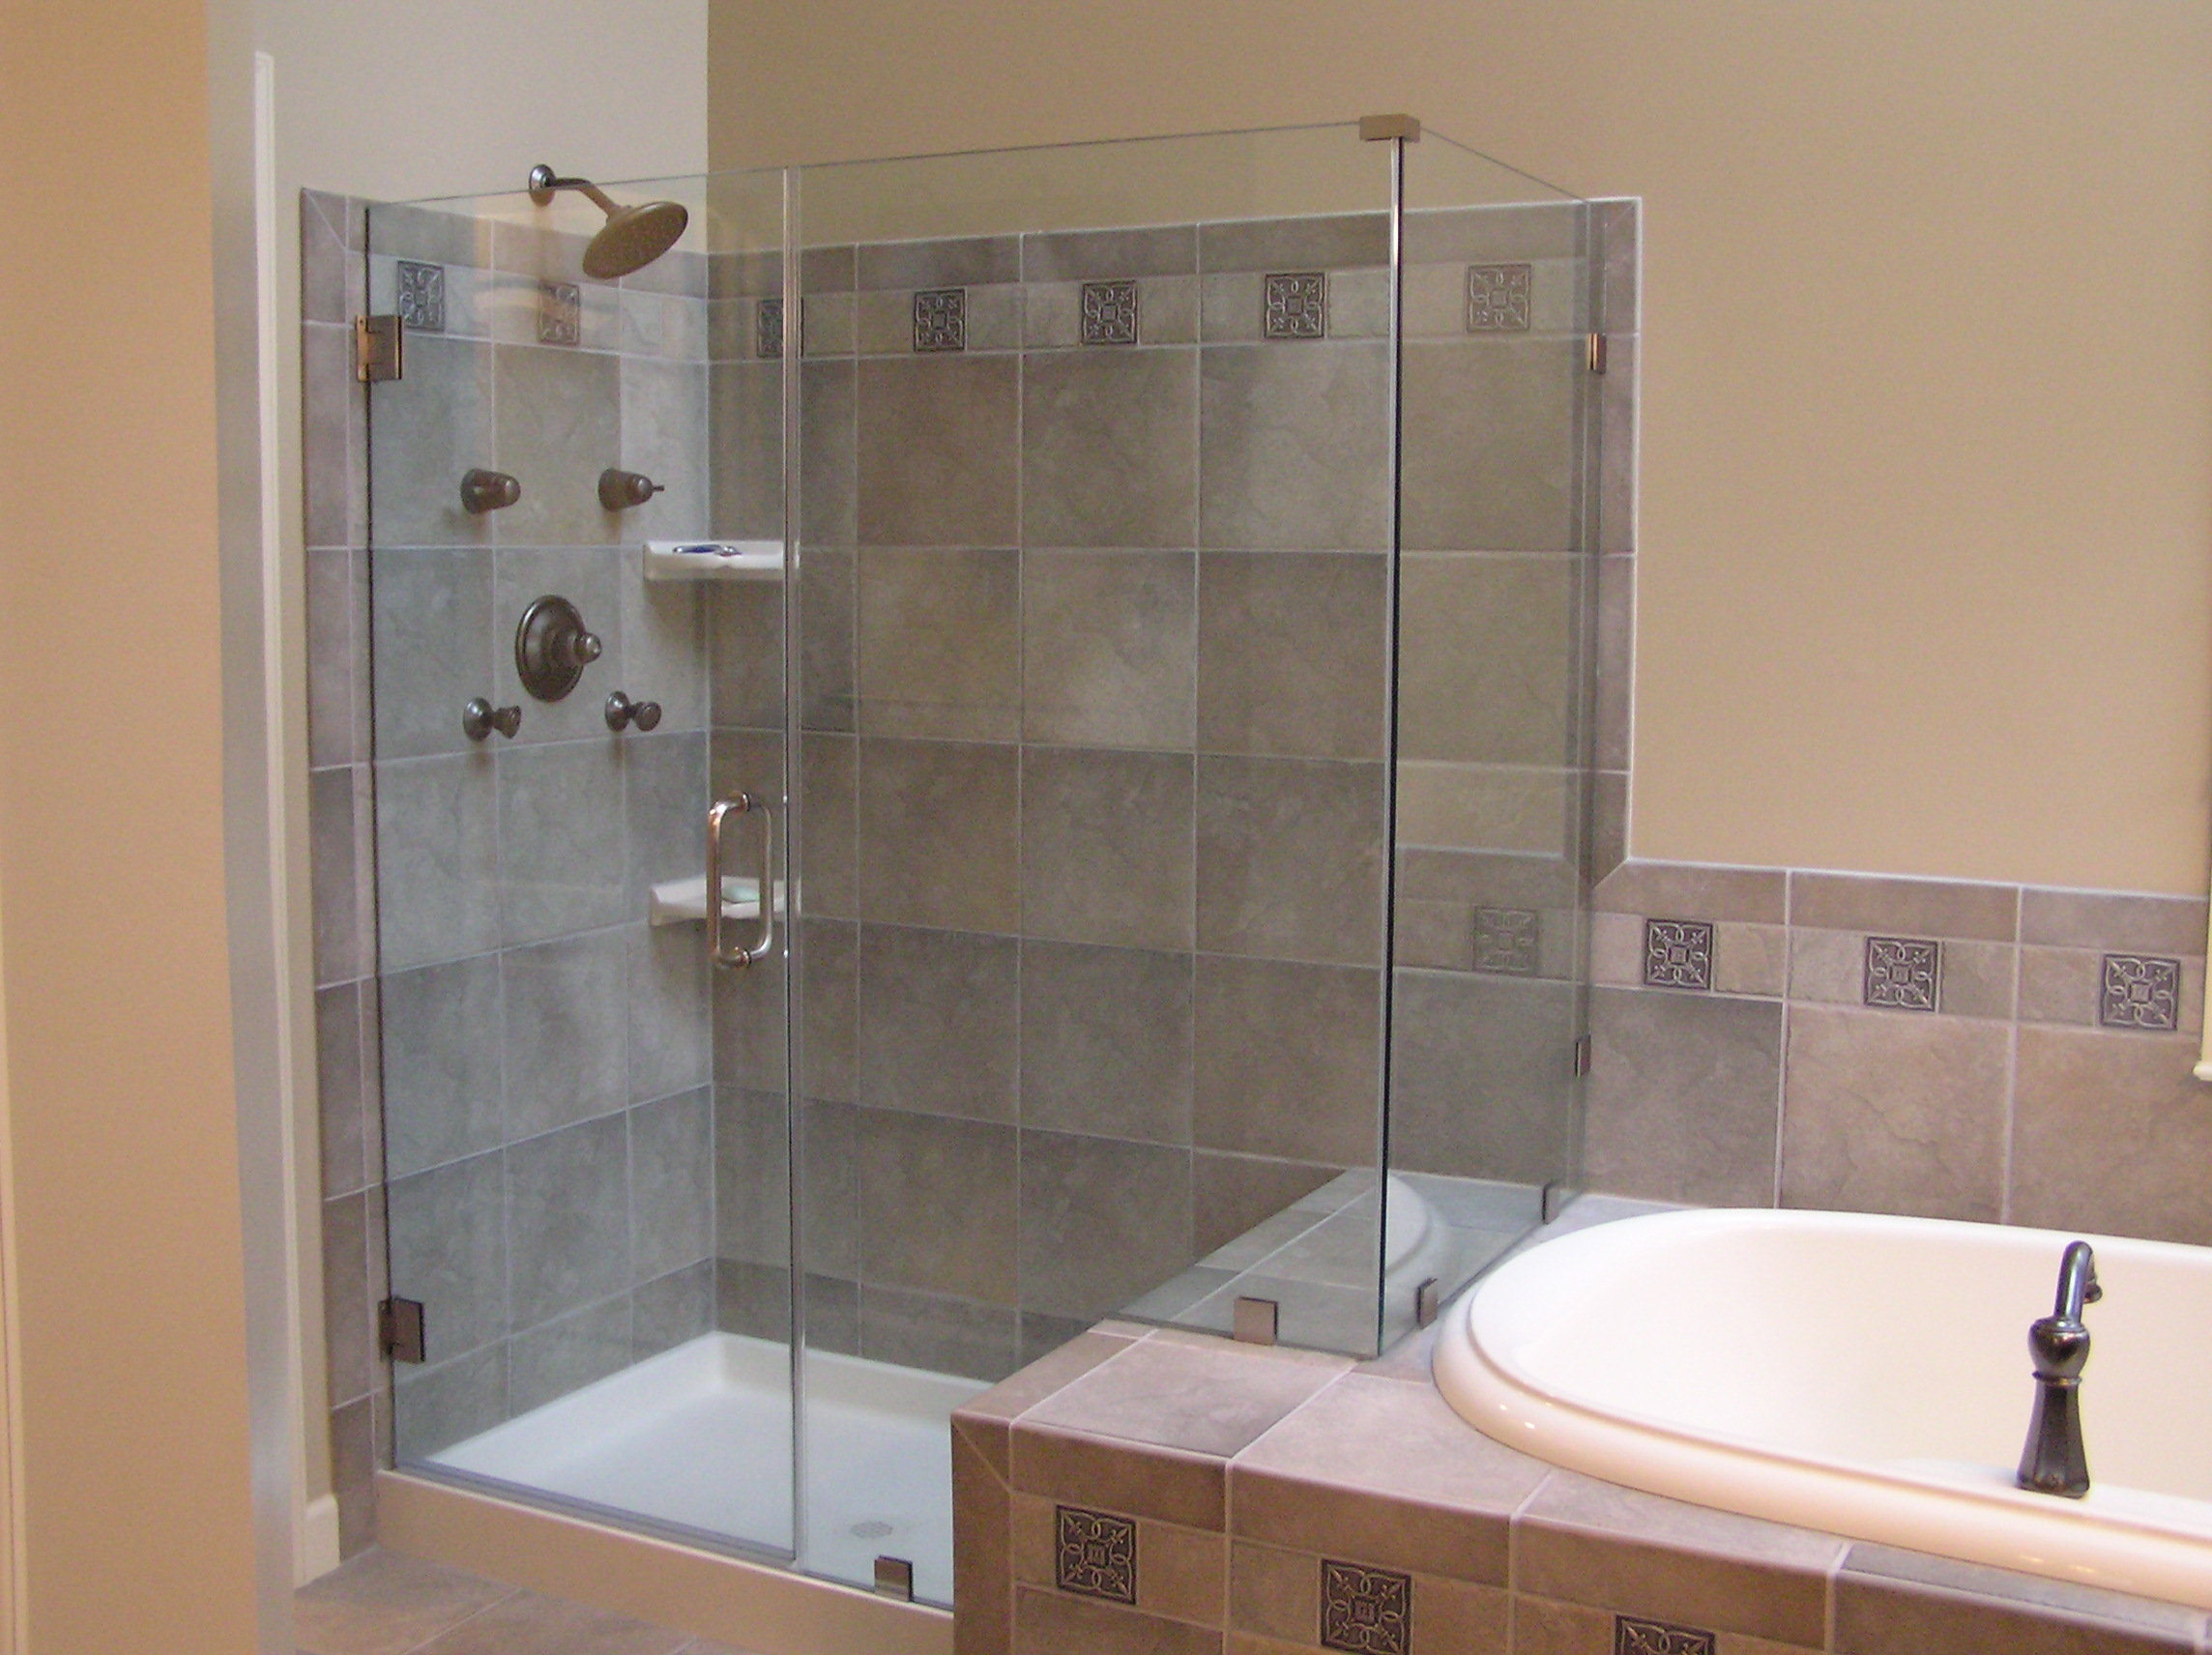 Small Bathroom Remodel Cost Large And Beautiful Photos Photo To - How much does it cost to redo a bathroom for small bathroom ideas